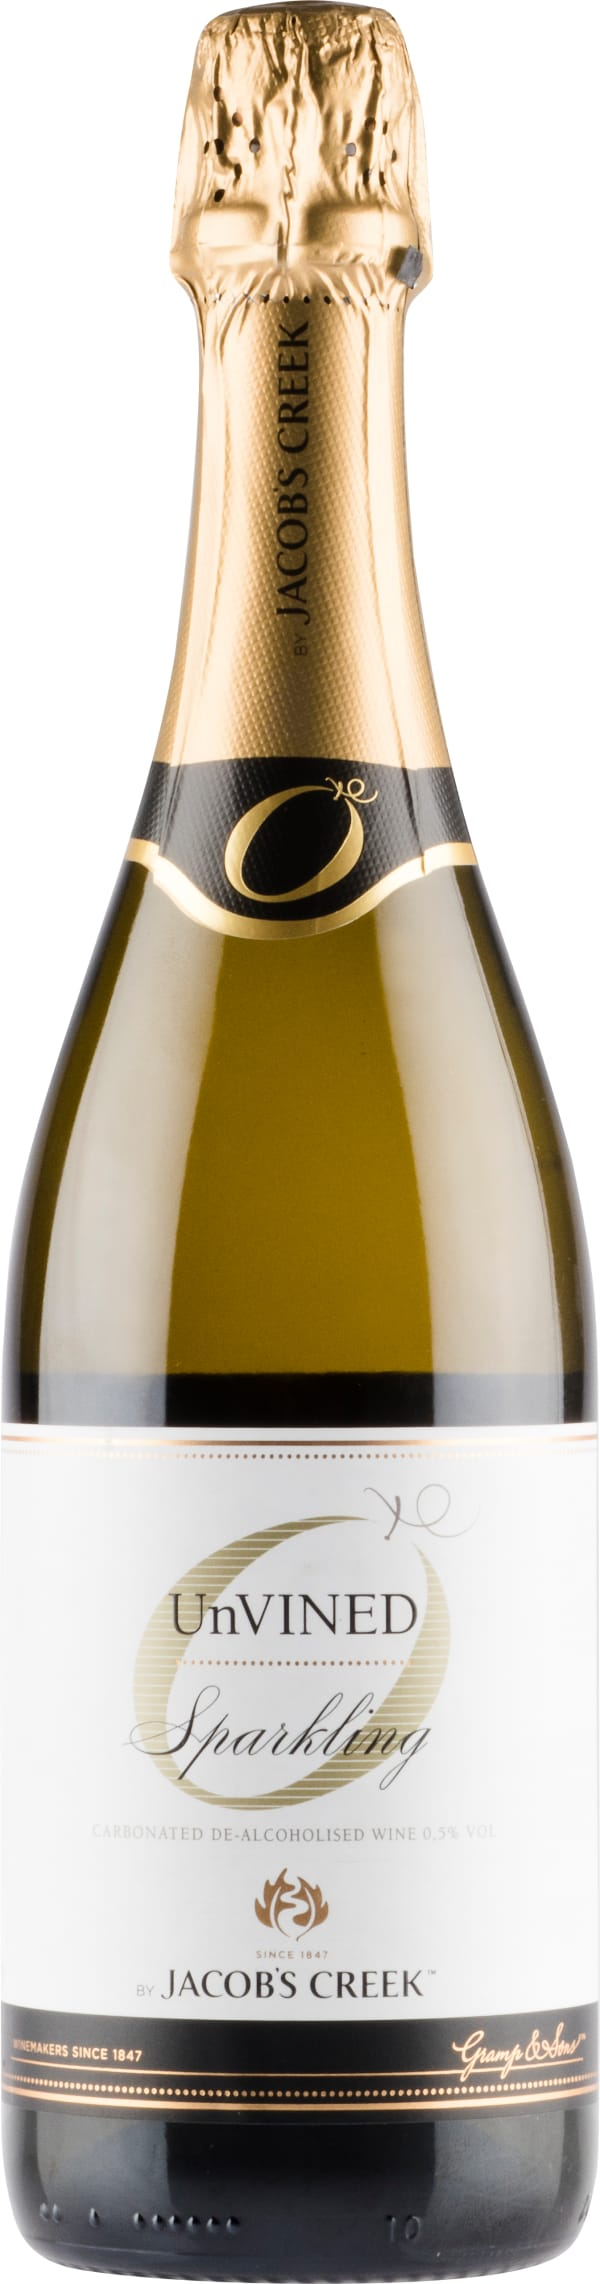 Jacob's Creek UnVined Sparkling